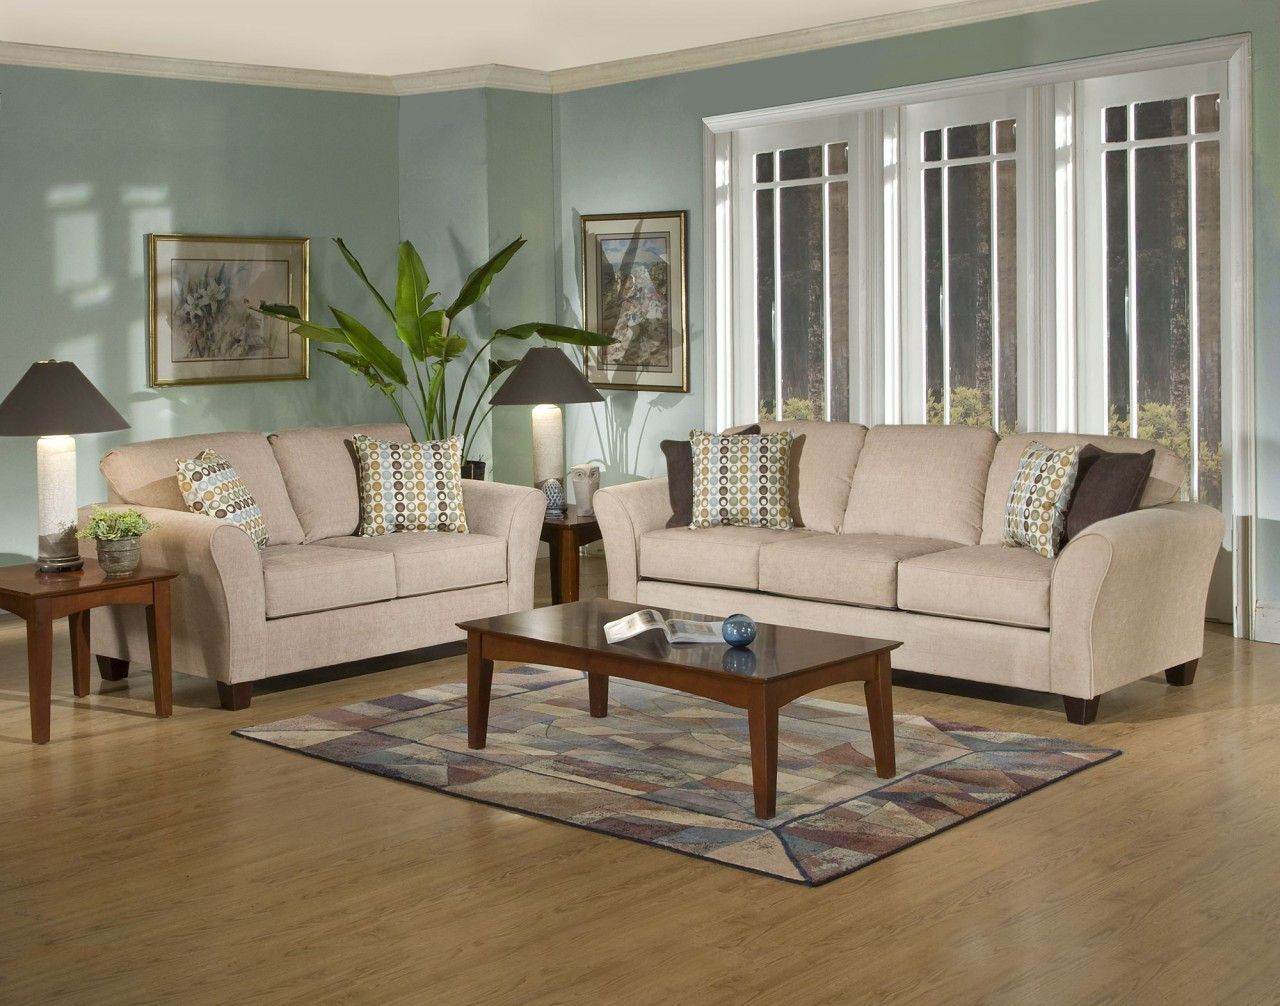 Living room ideas tan sofa - Room Viewpoint Tan Sofa Loveseat